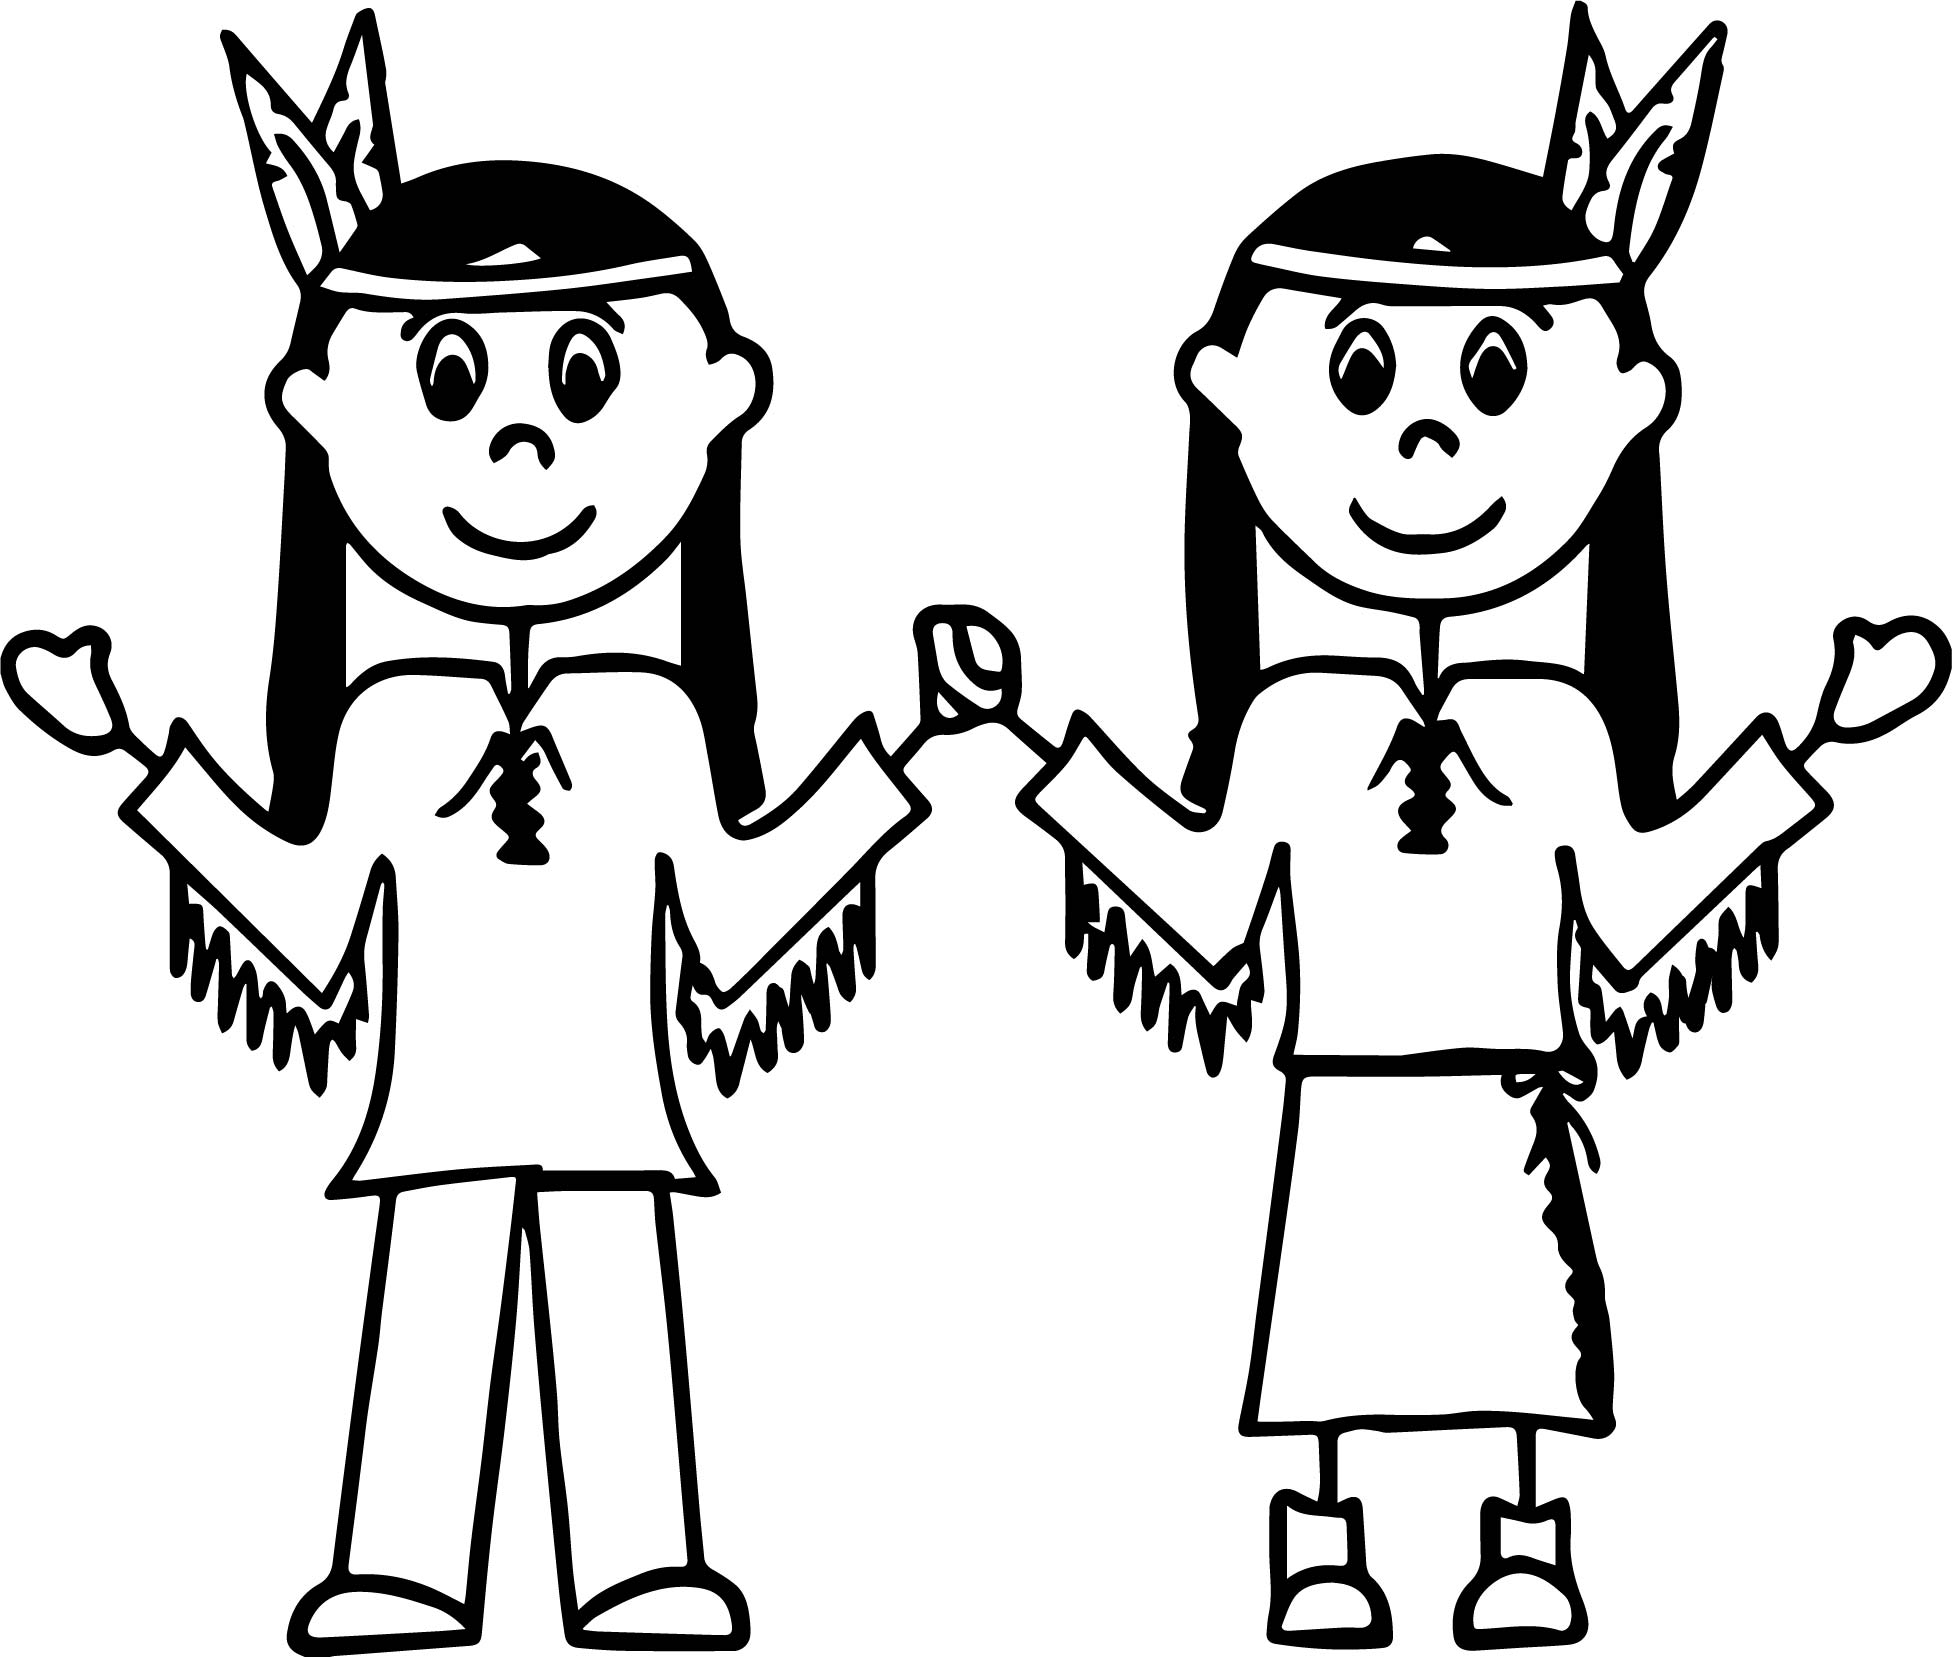 american two girls indian coloring page - Girl Indian Coloring Pages